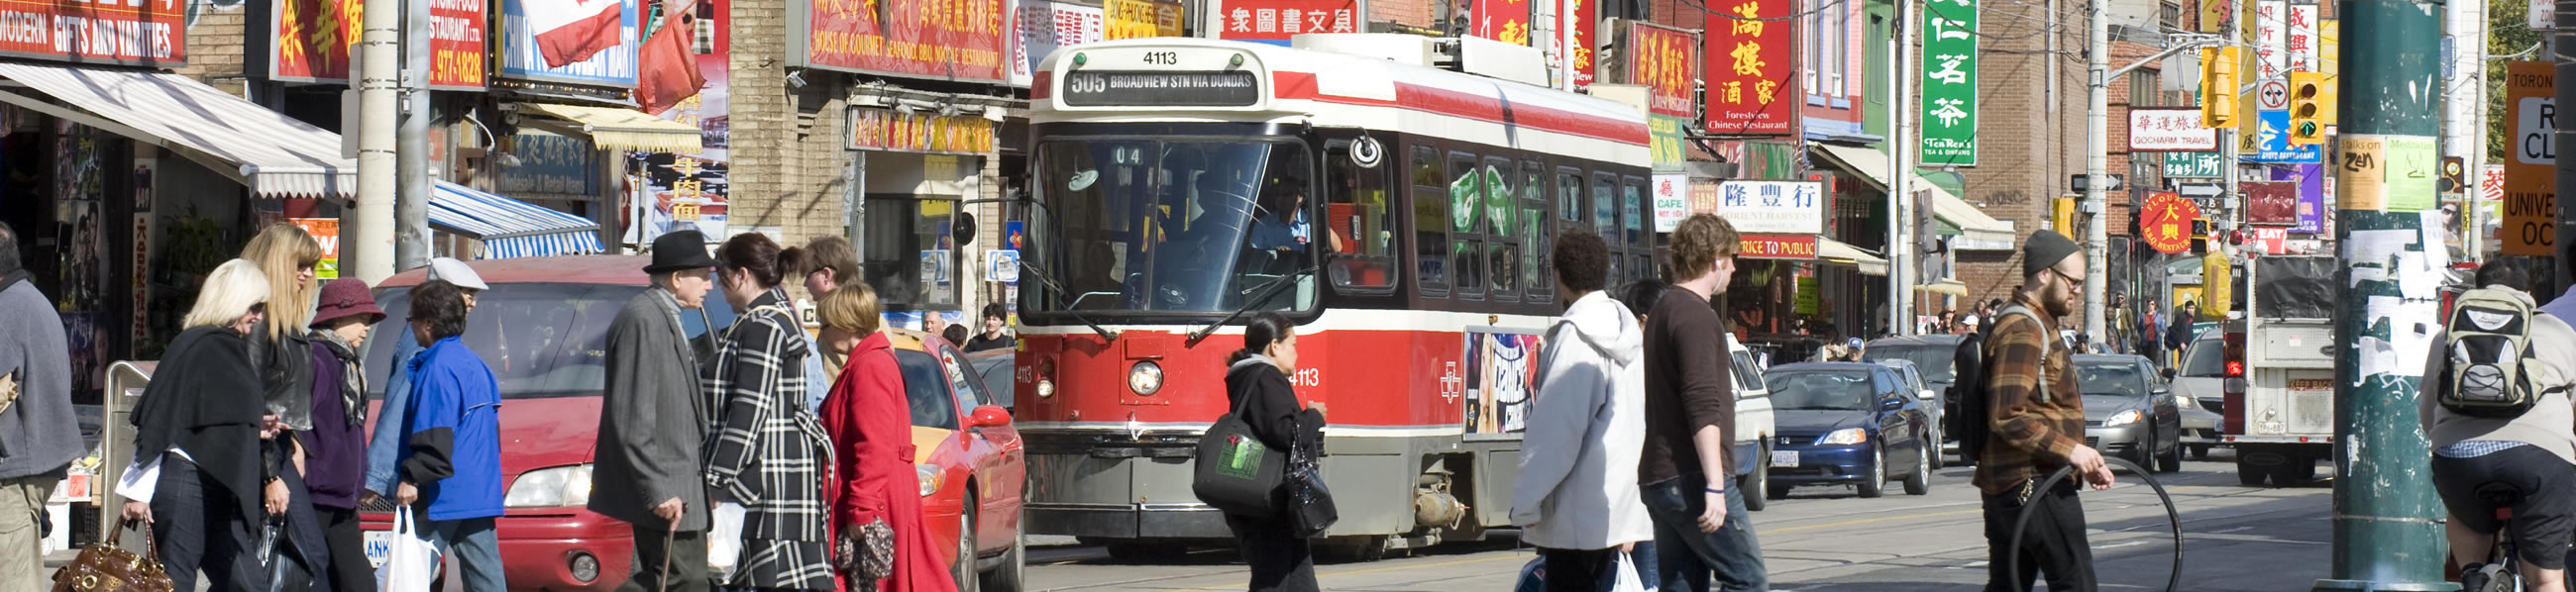 Traffic on busy street in Toronto, tram, cars and padestrian commuters